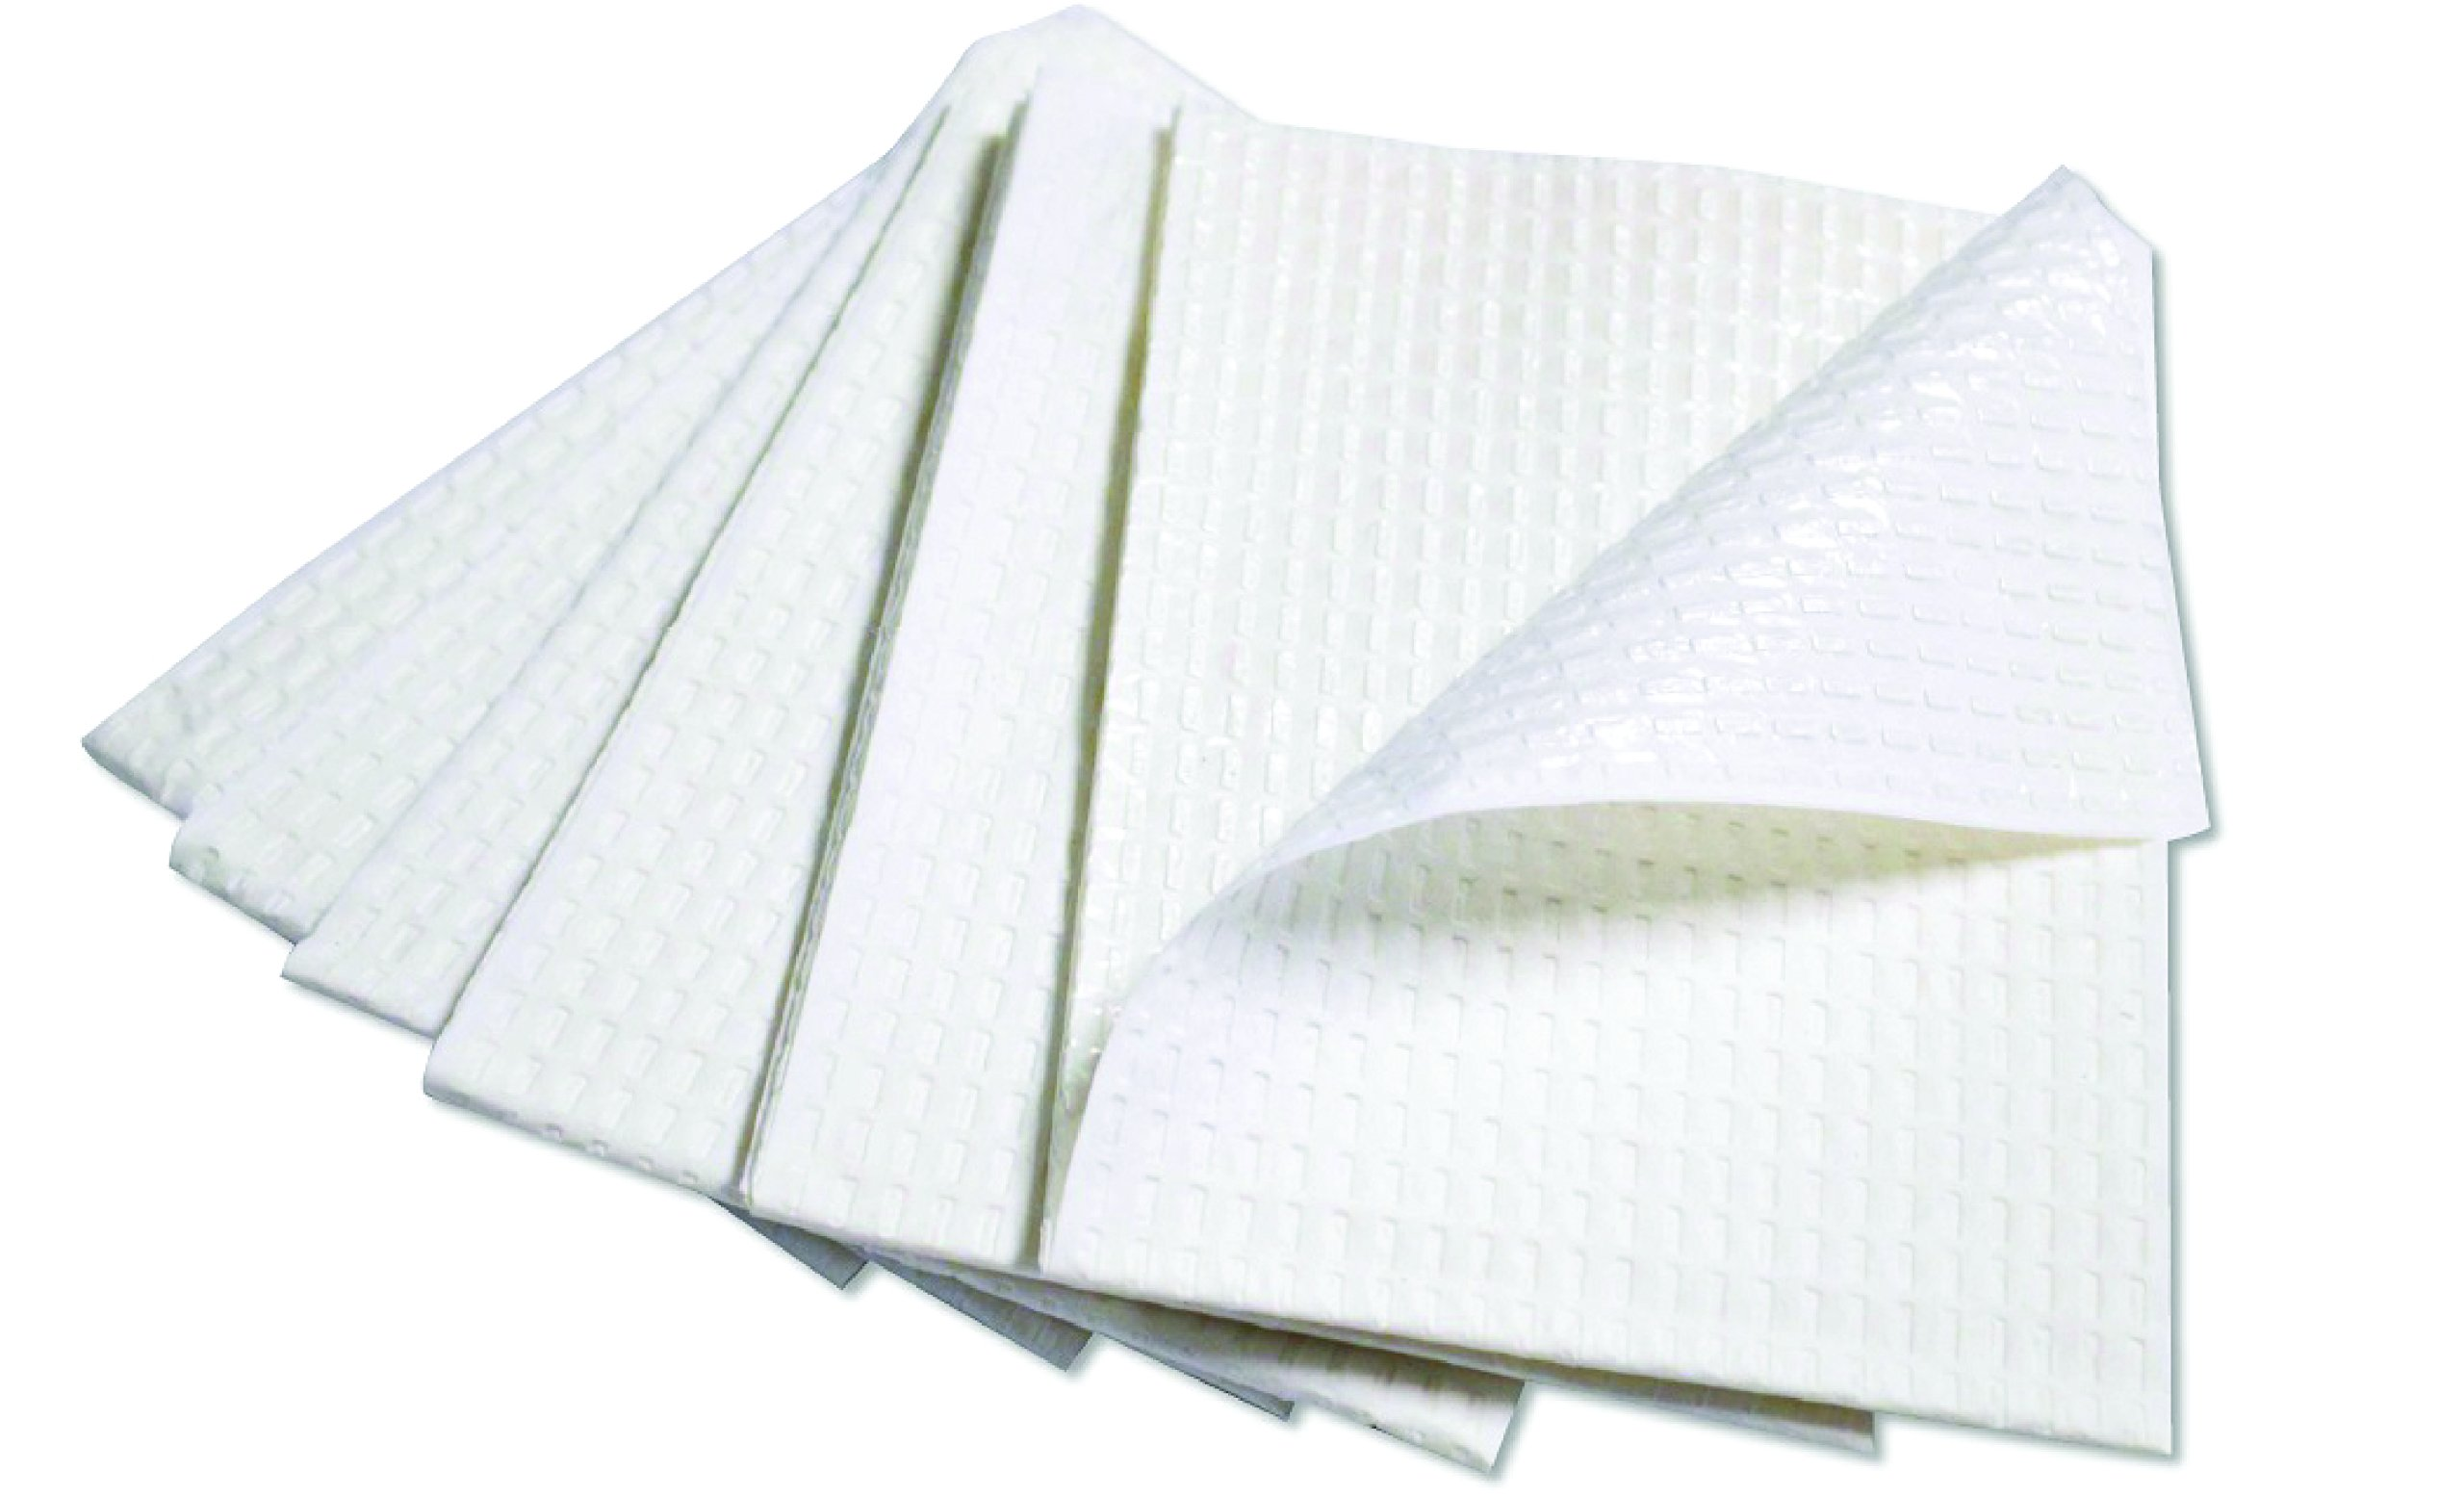 Avalon Papers 1051 Dental Bib Polyback Towel, 2-Ply Tissue + Poly, 13'' x 18'', White (Pack of 500)